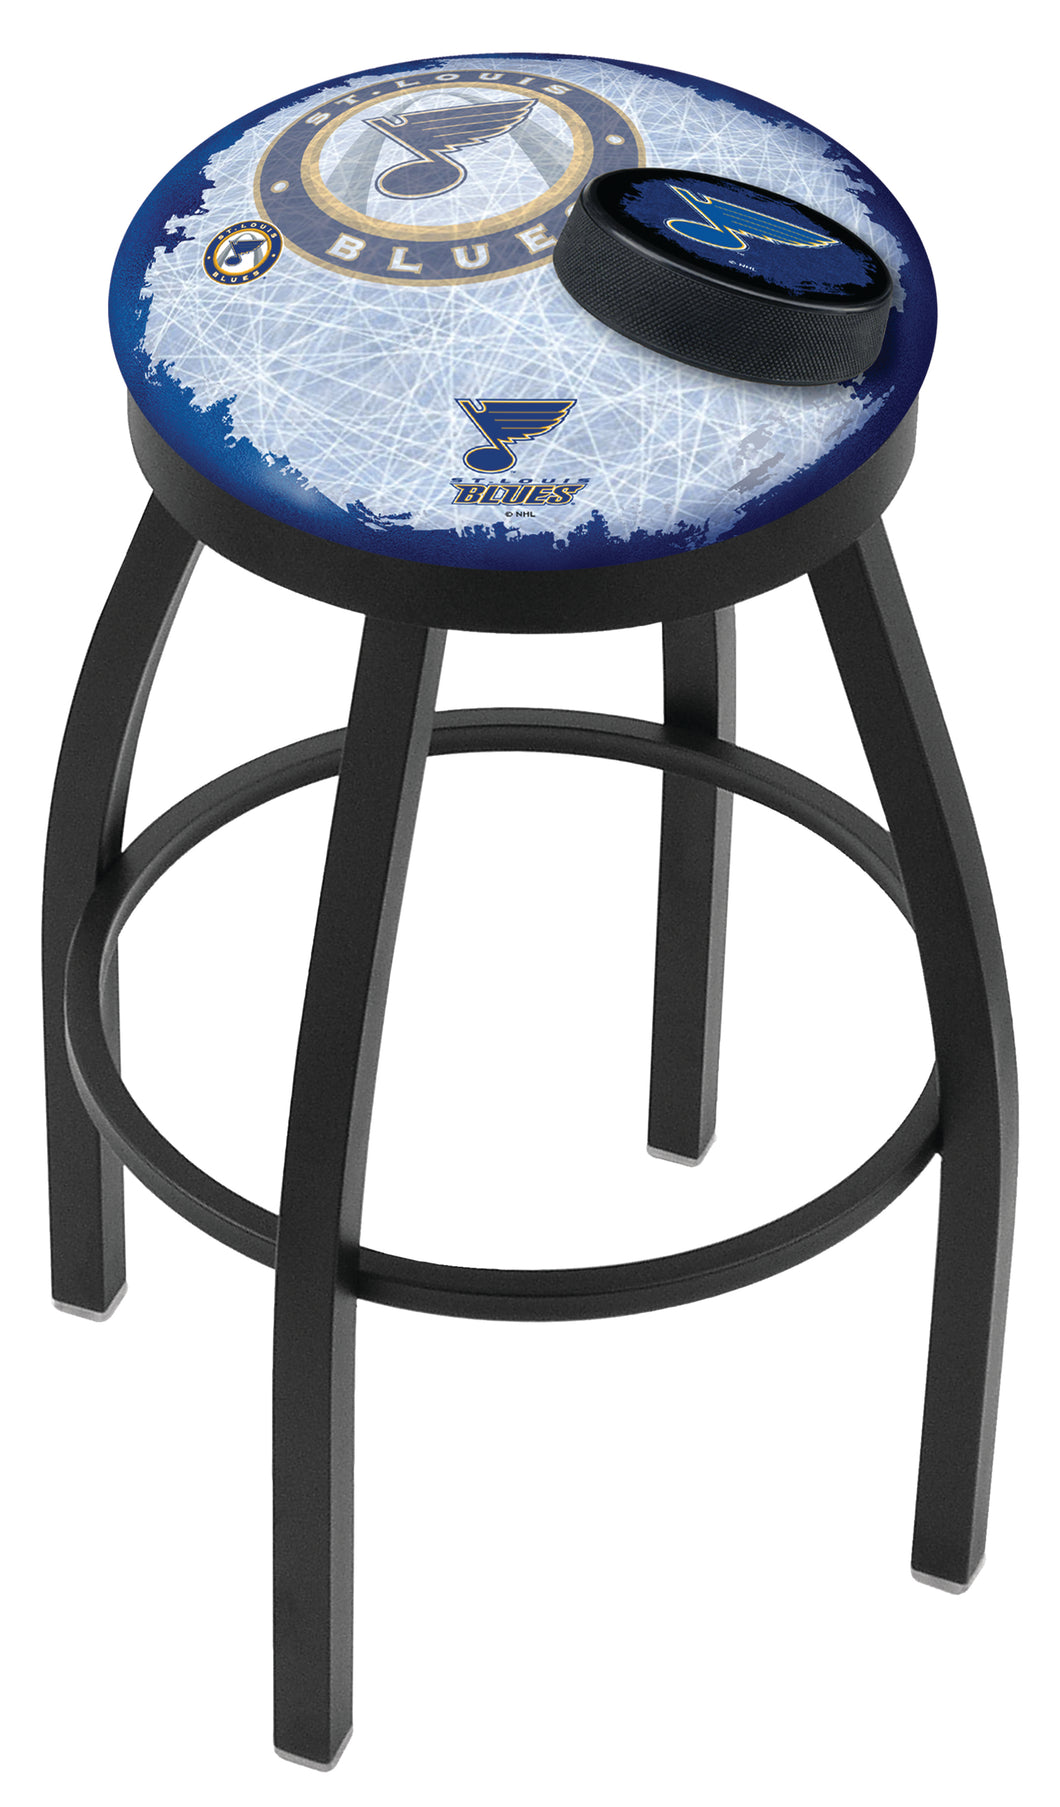 Holland Bar Stool,NHL,Bar Stool,L8B2B,30